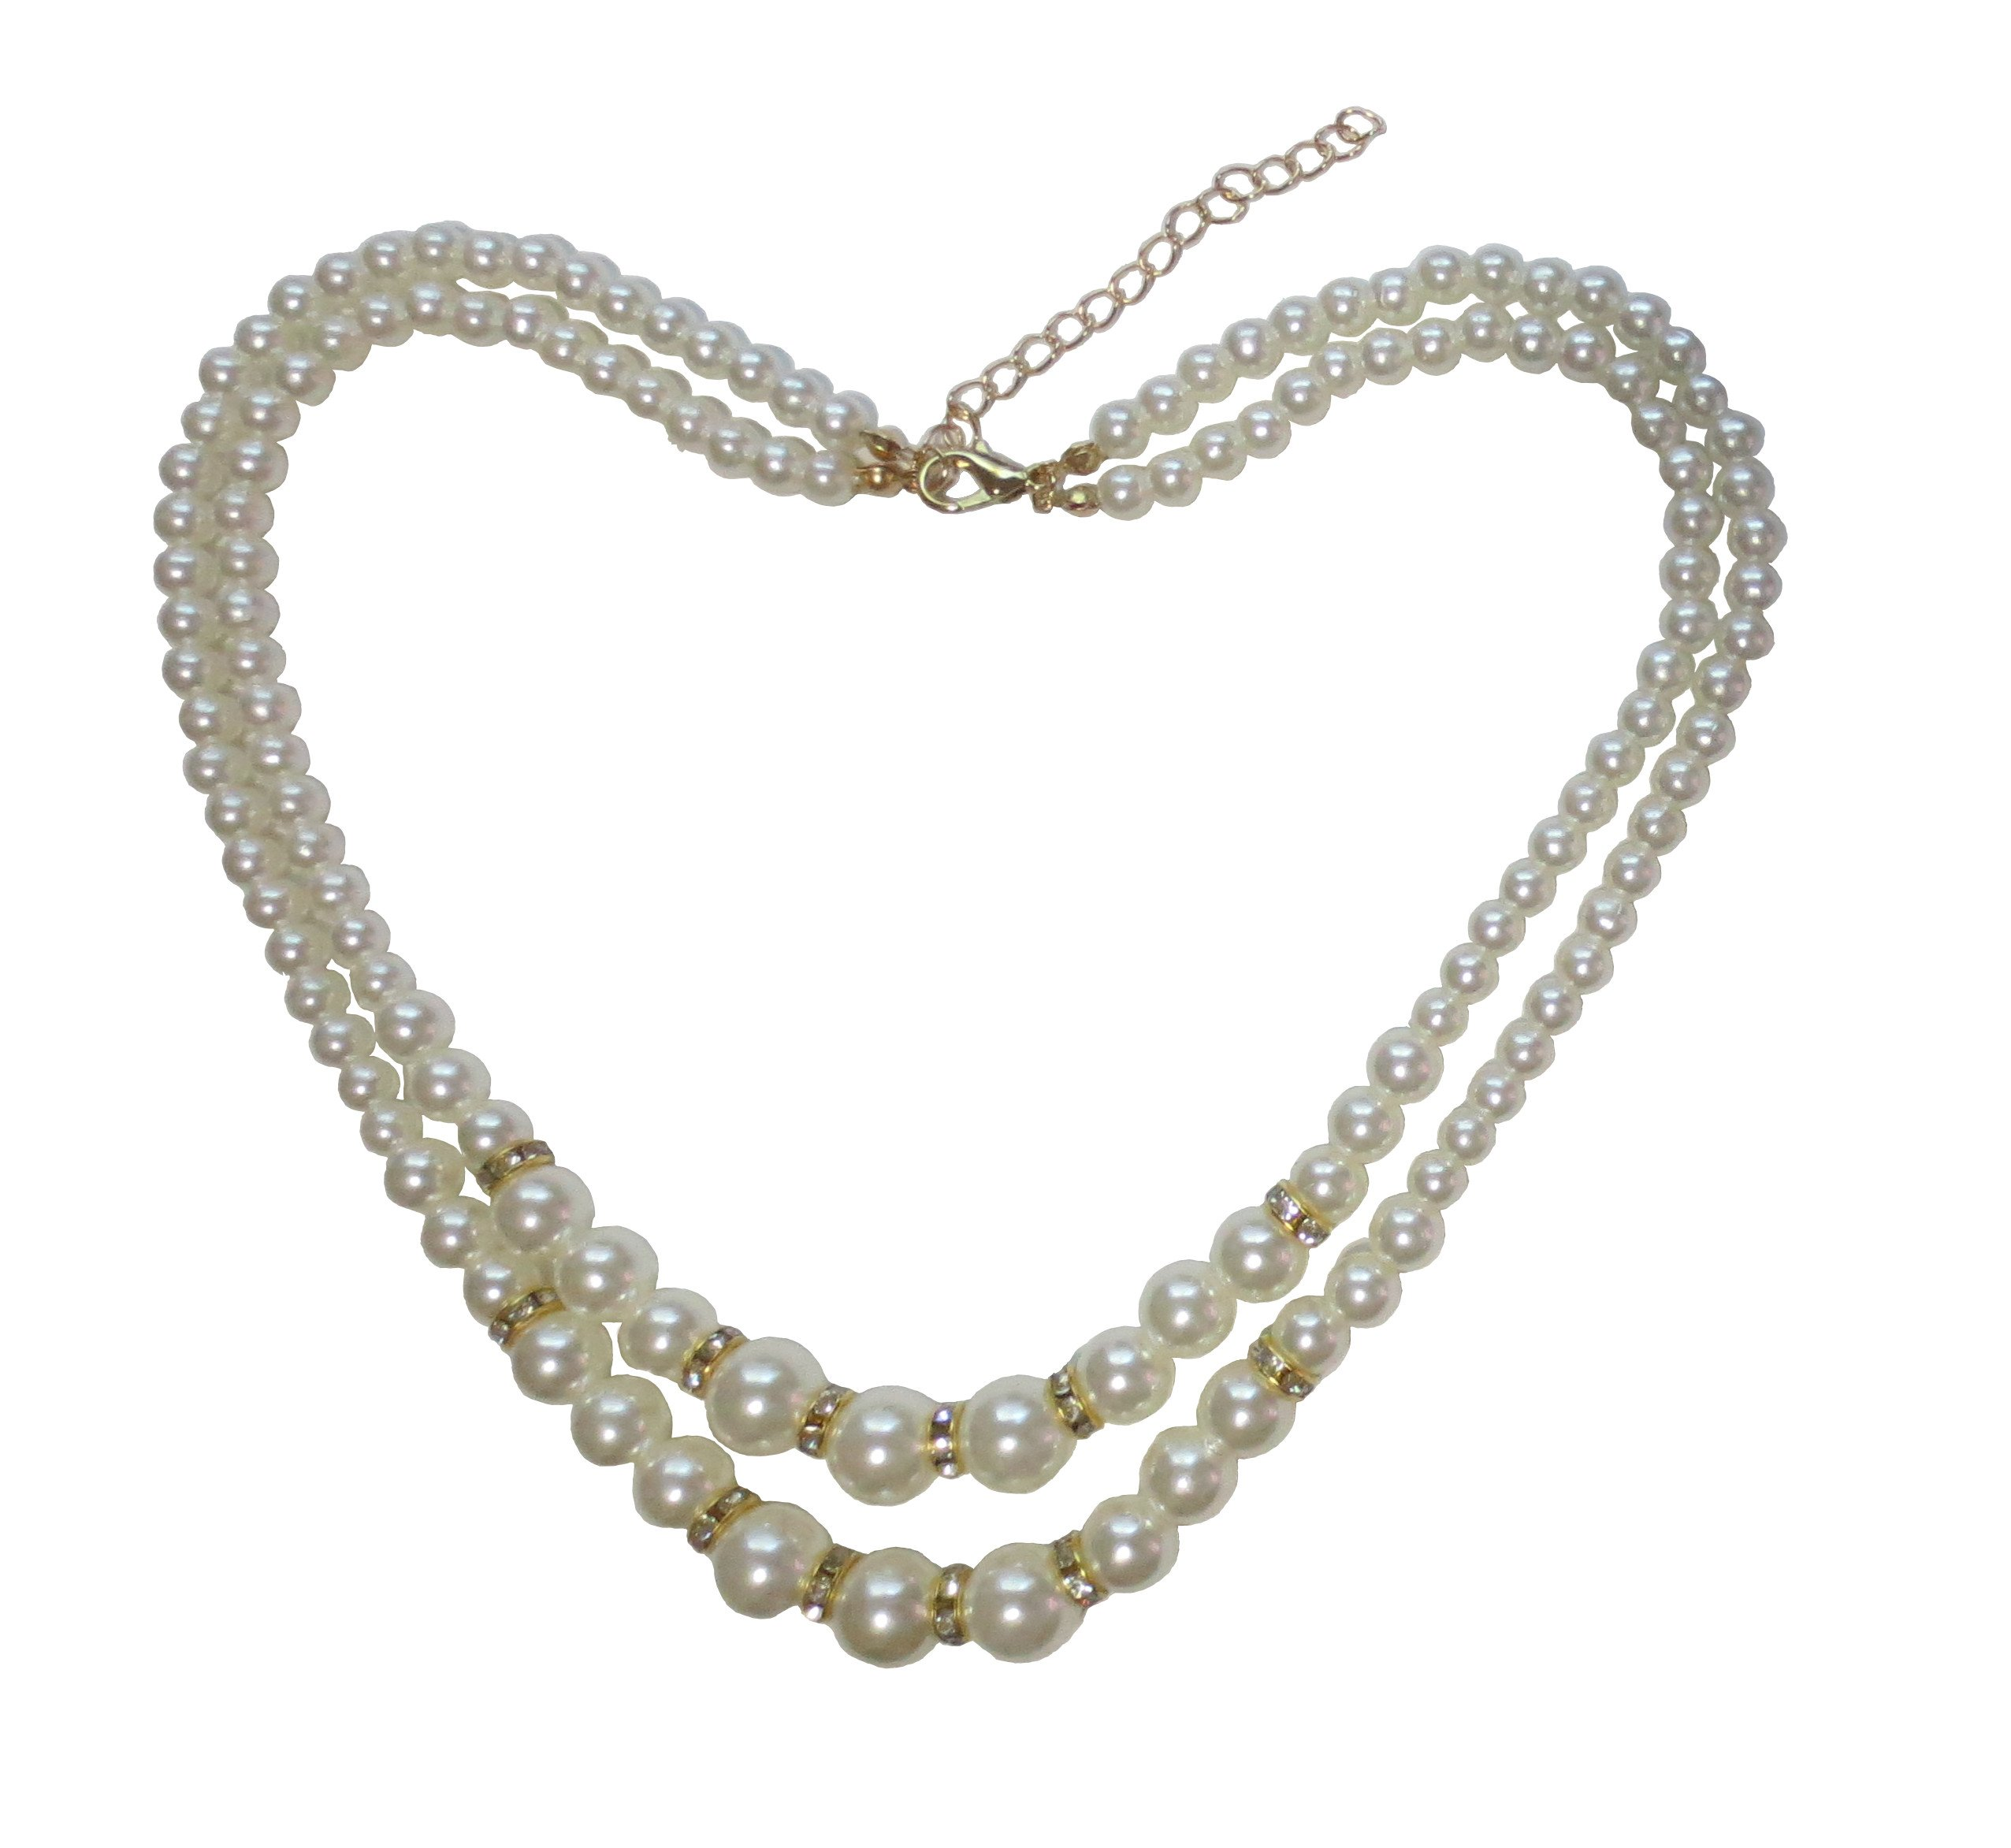 STAYJOY 2-Strand Creamy White Pearl Crystal Gold Fashion Choker Necklace with Extender